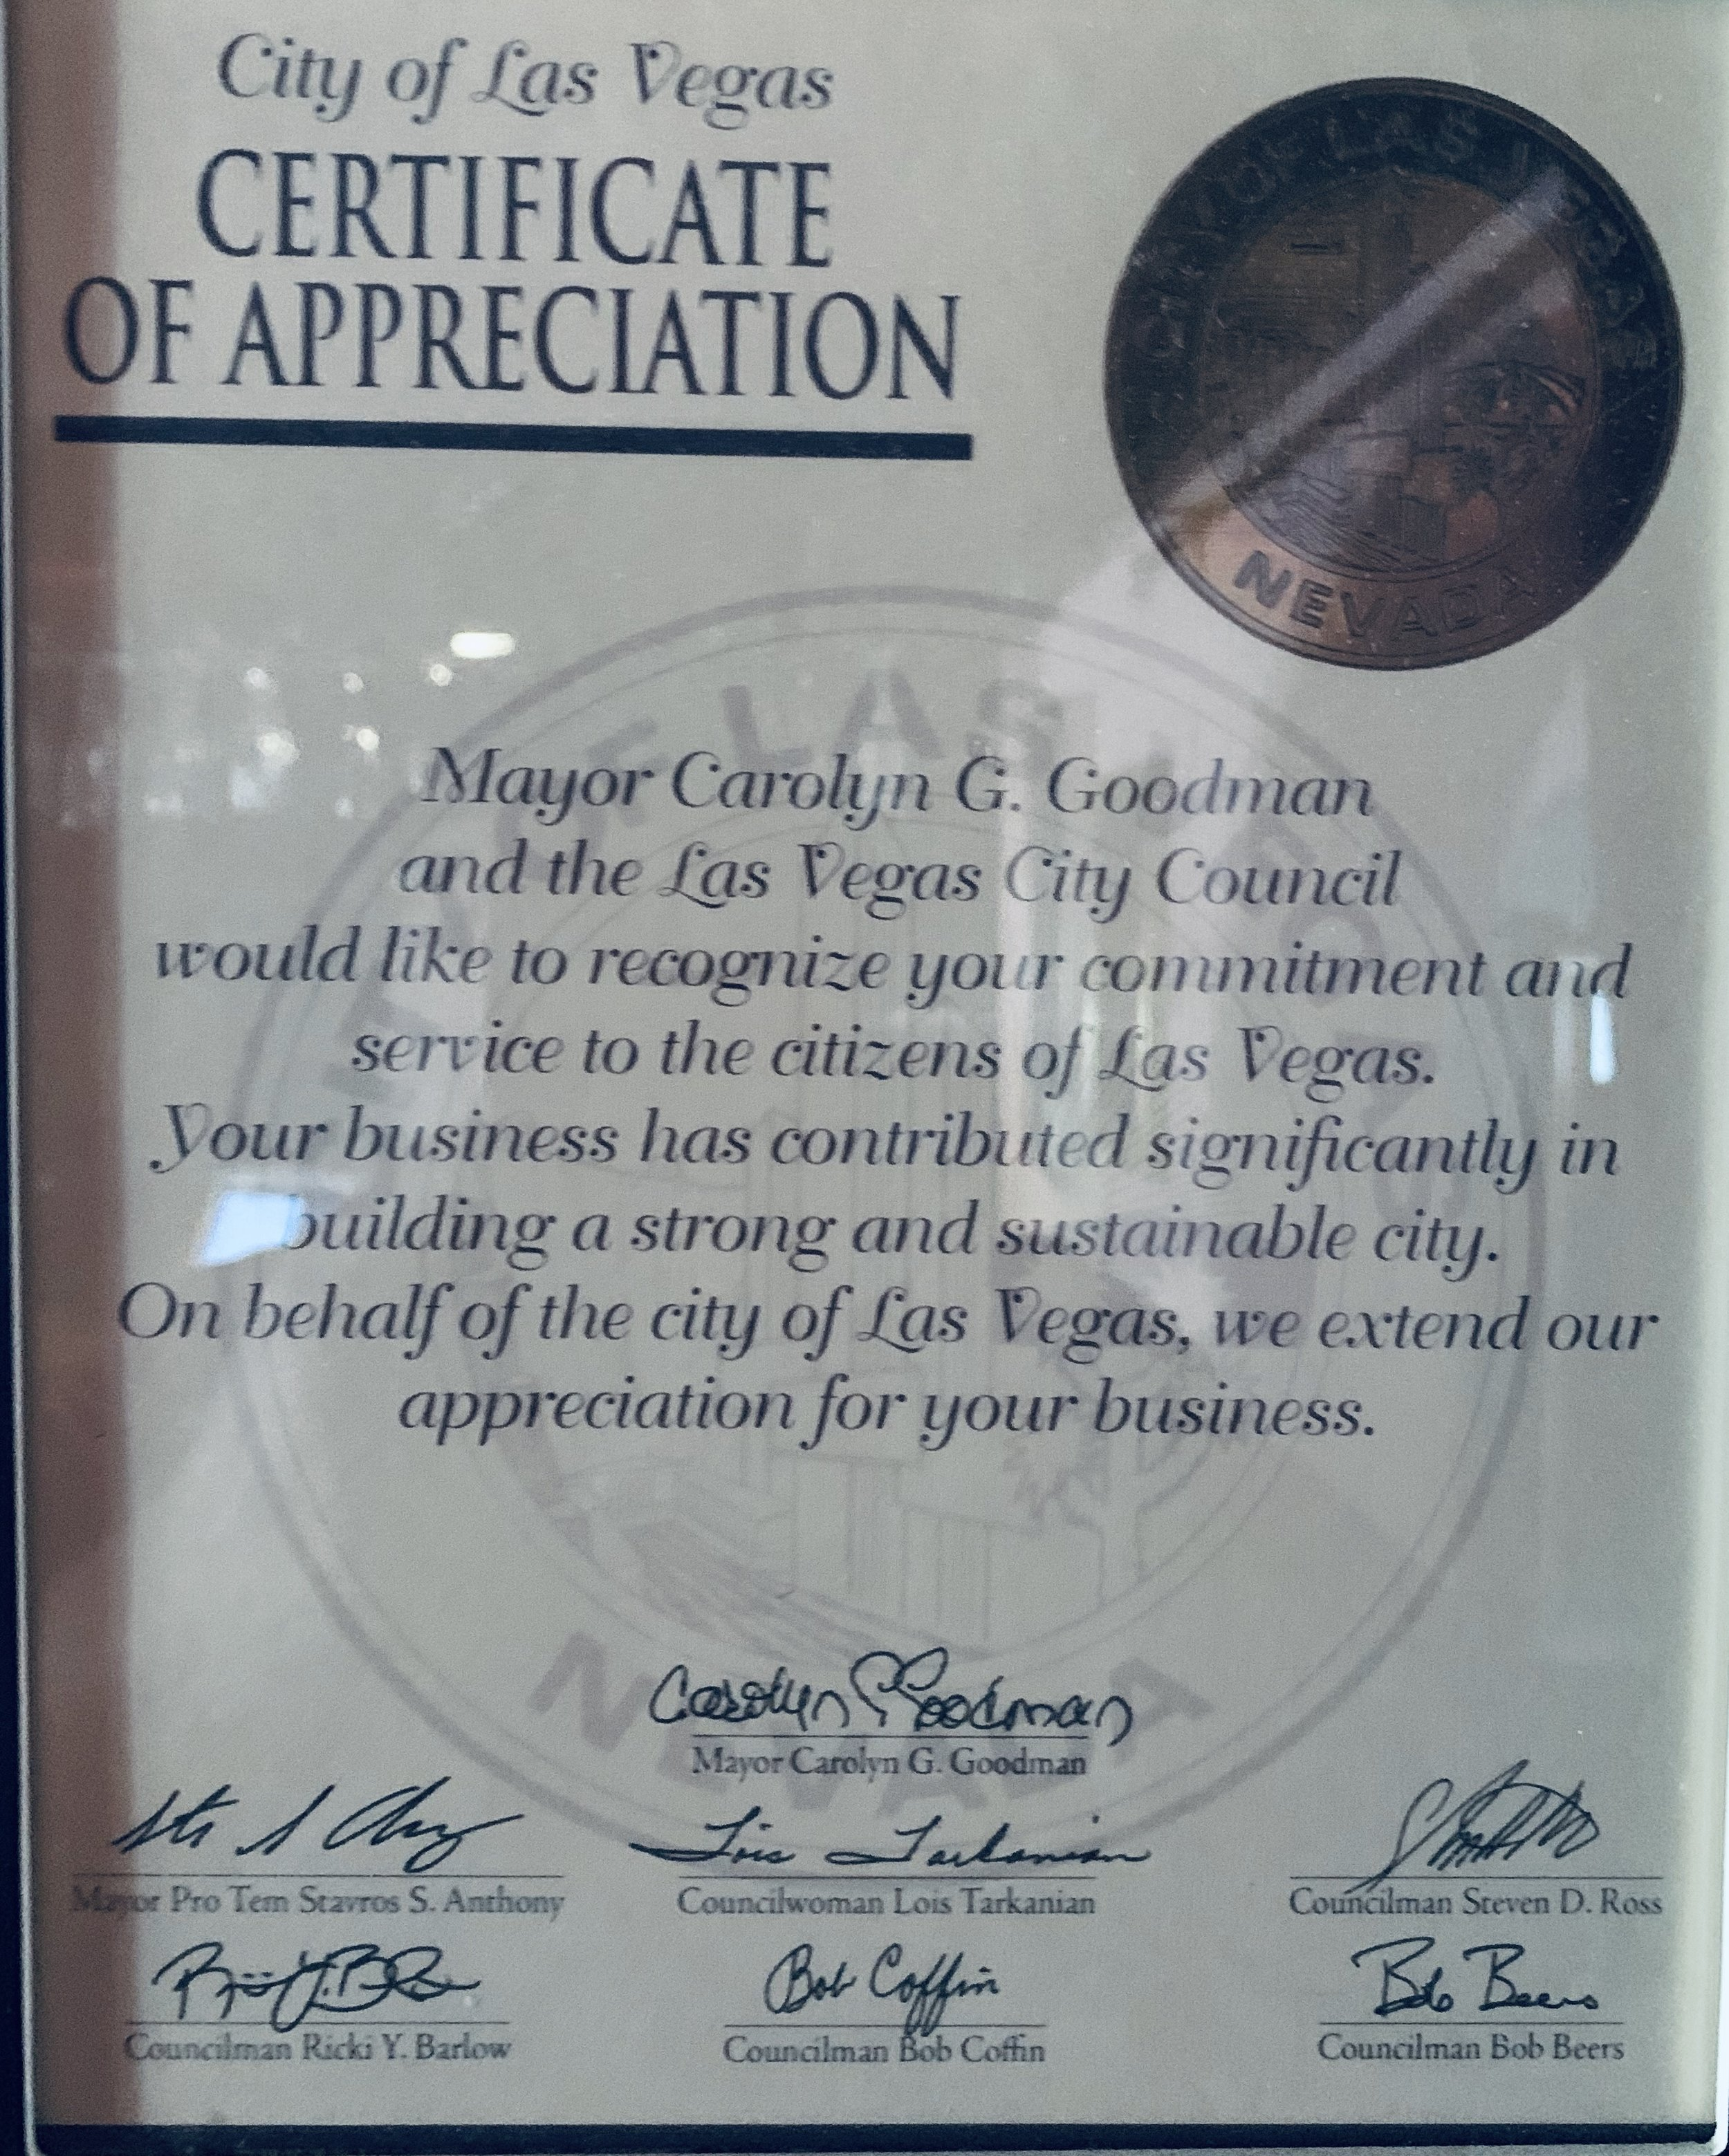 Award from the City